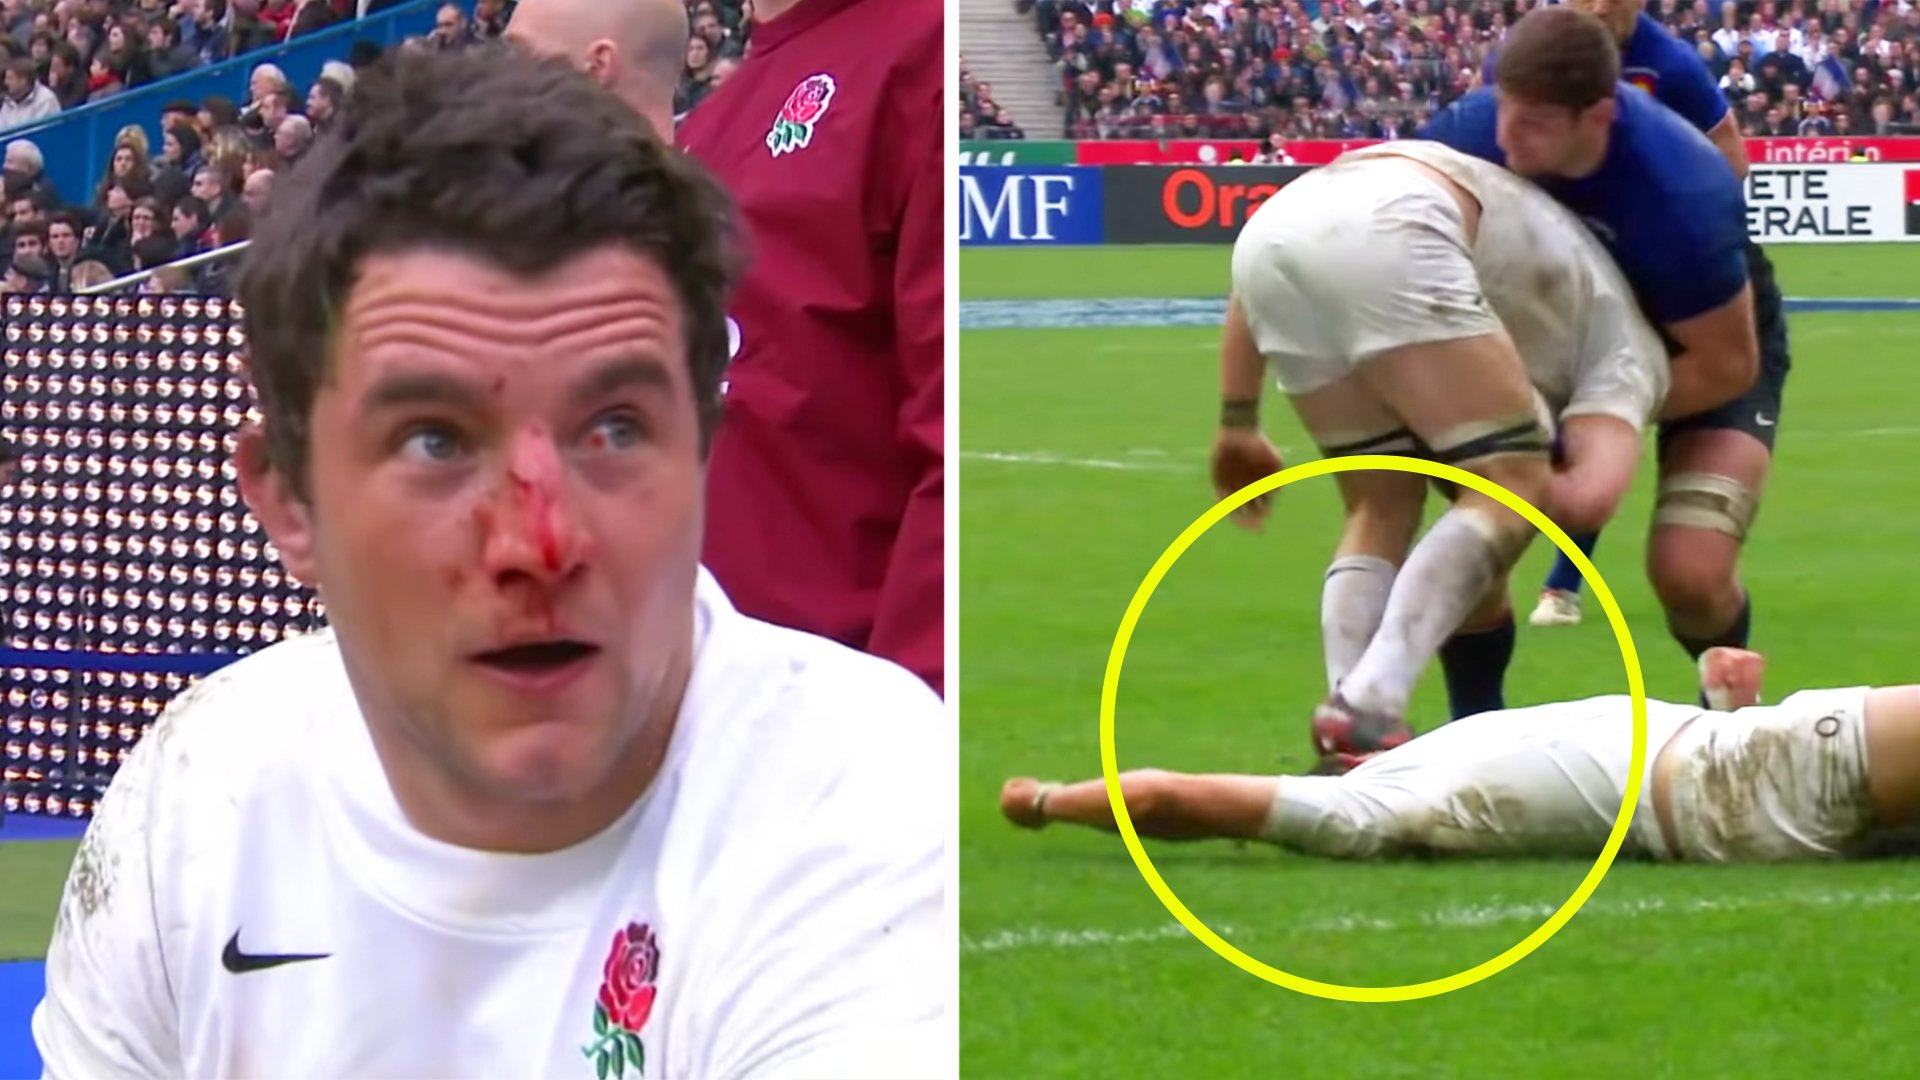 New video reveals horrific face stamp that almost blinded England star